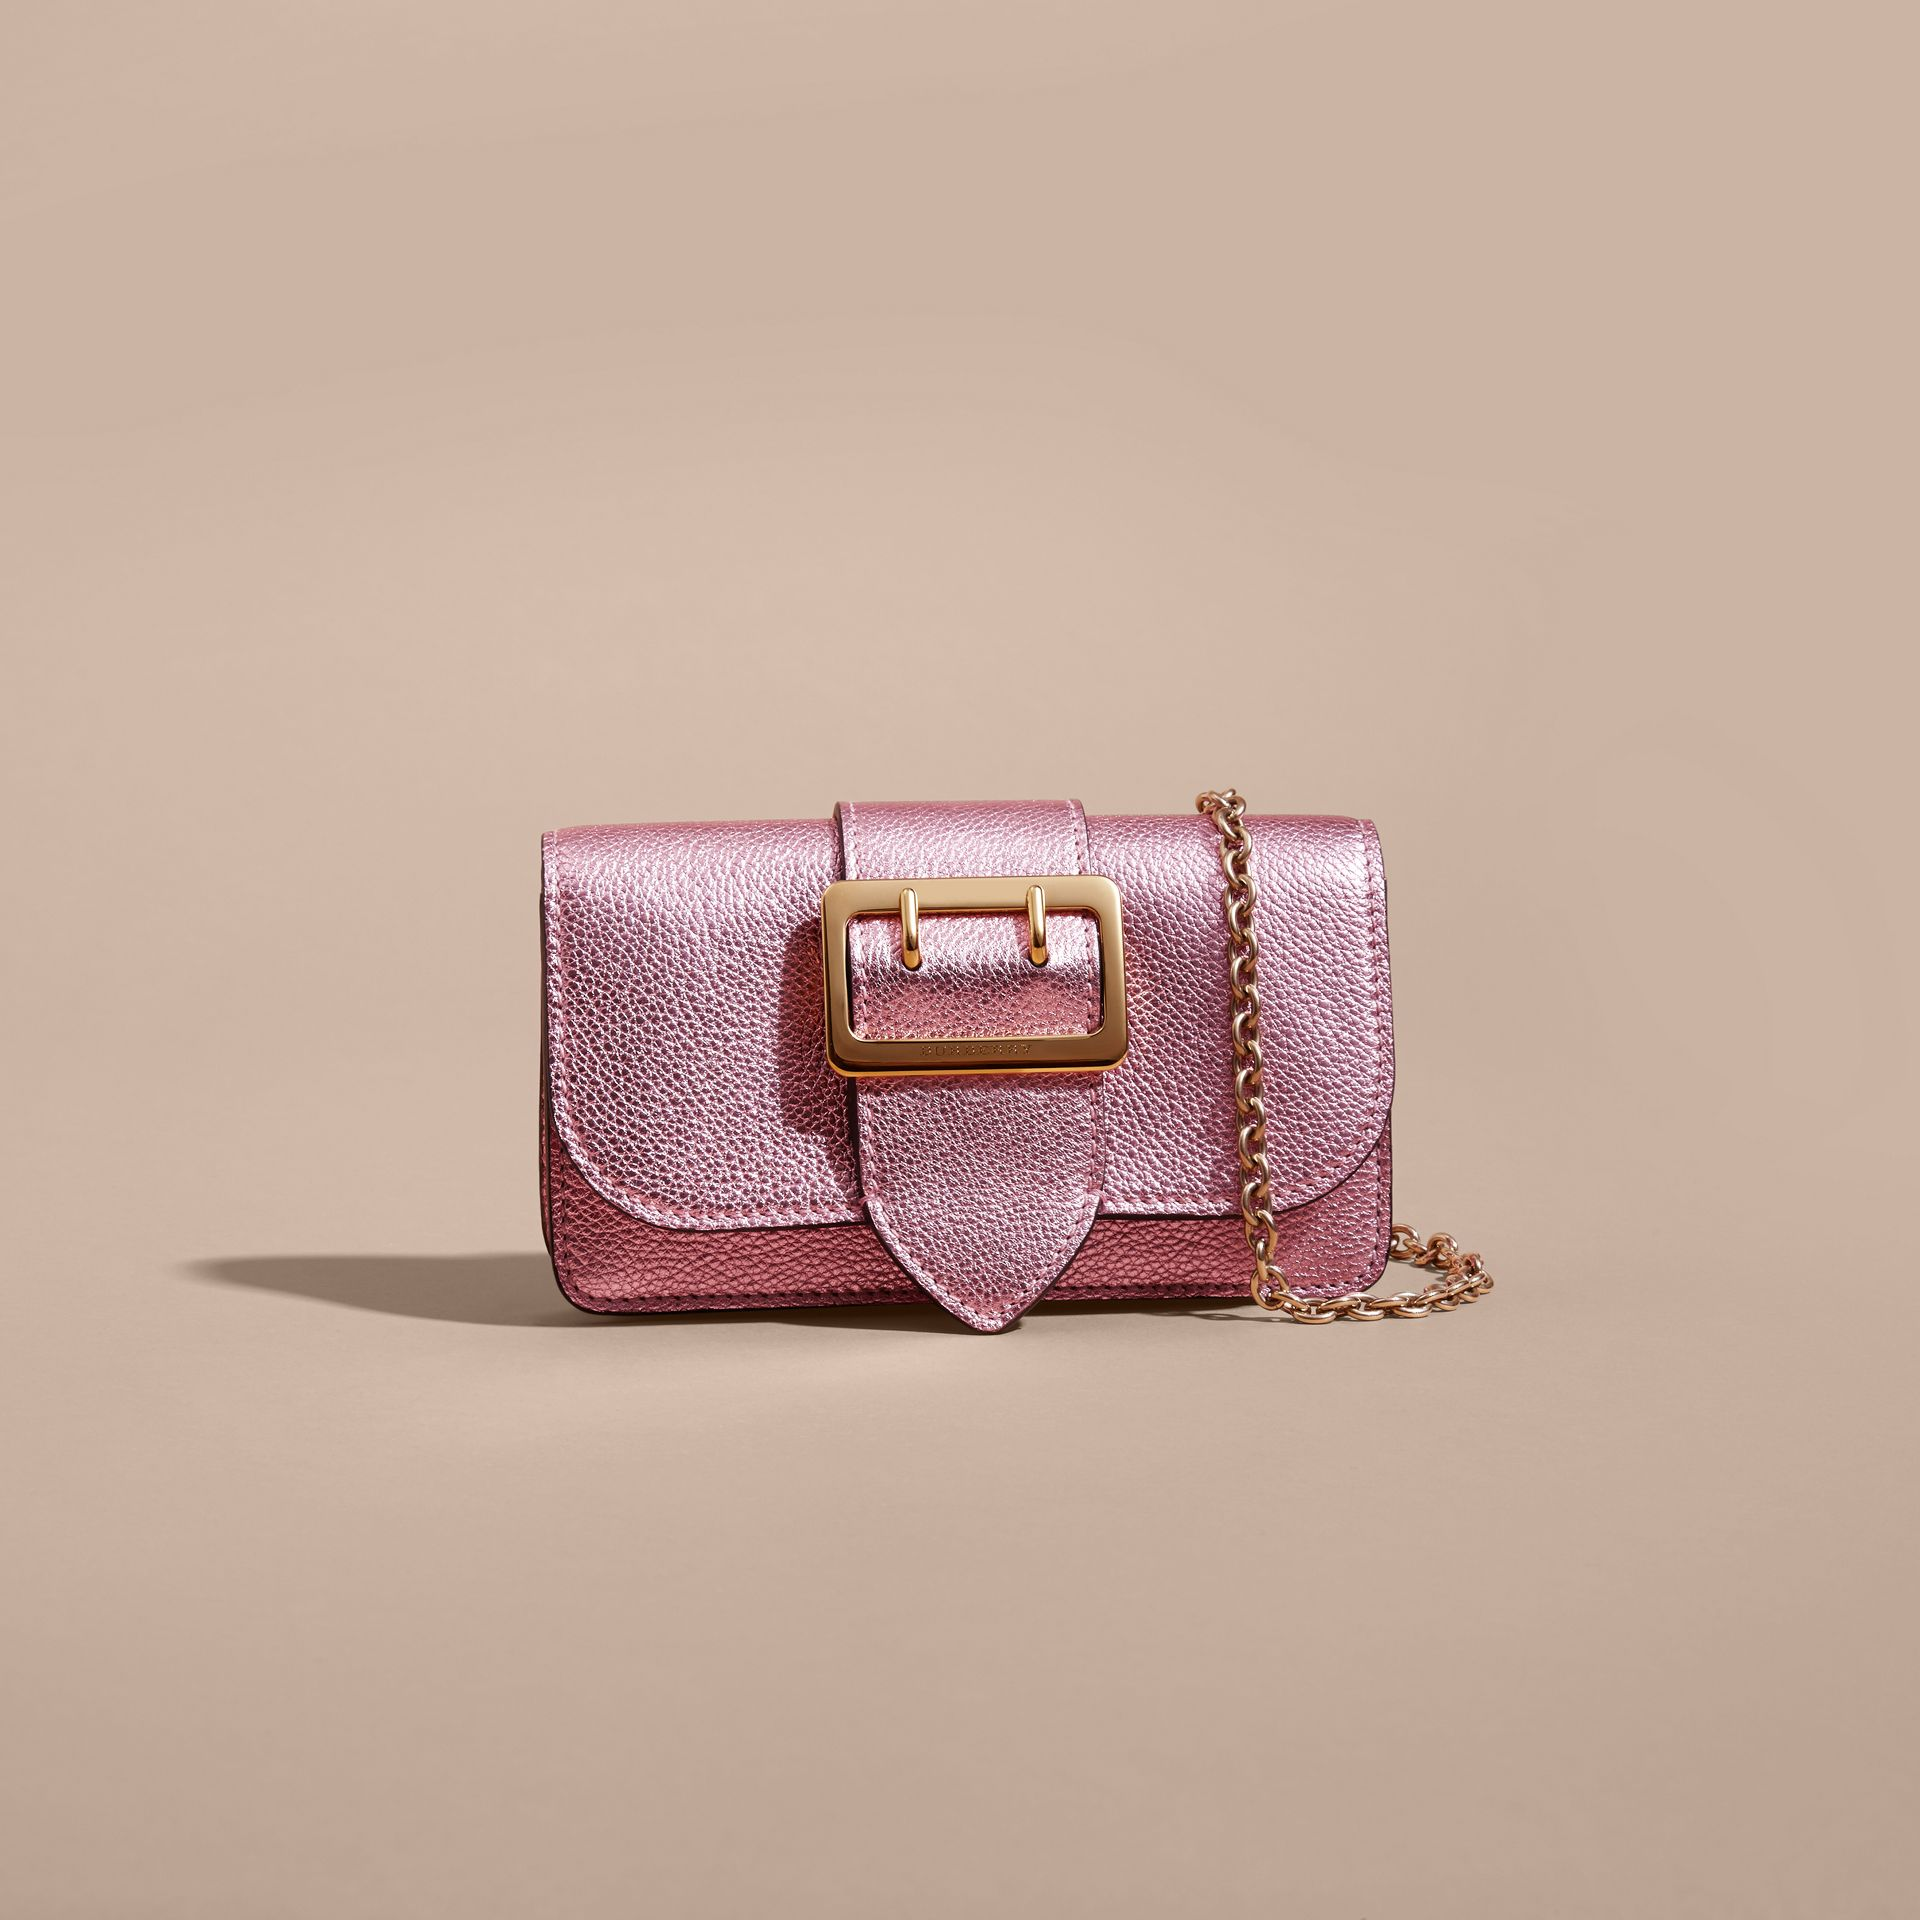 Pale orchid The Mini Buckle Bag in Metallic Grainy Leather Pale Orchid - gallery image 9